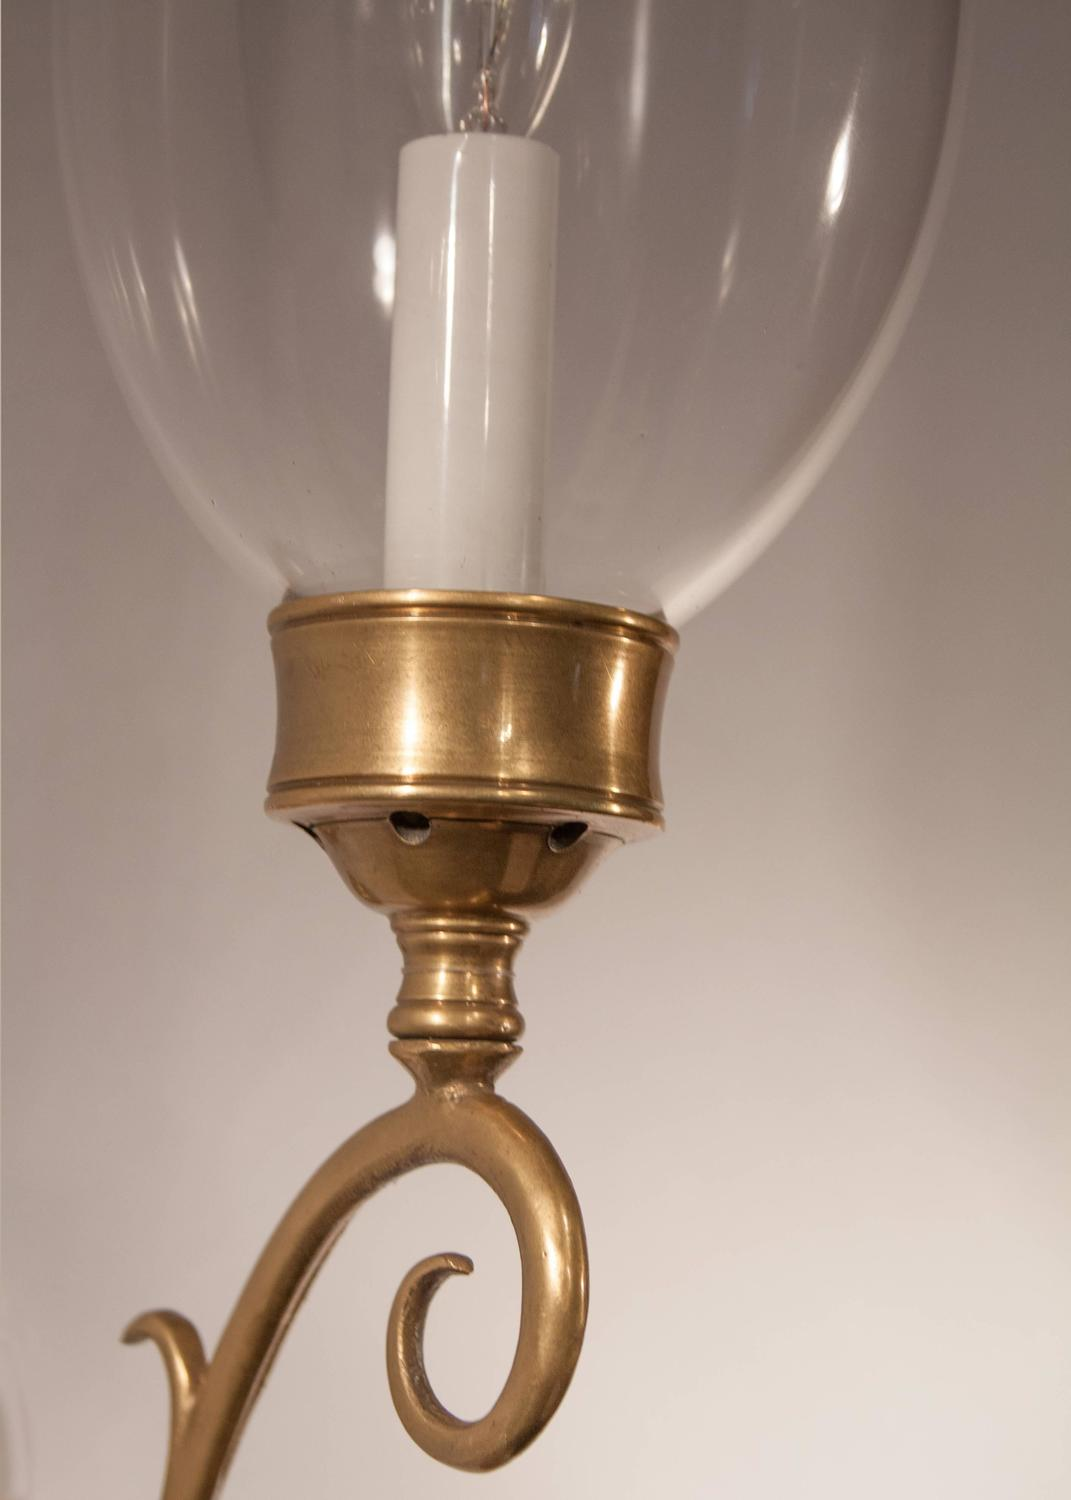 Hurricane Wall Sconces Lamps : Pair of 19th Century English Hurricane Wall Sconces at 1stdibs